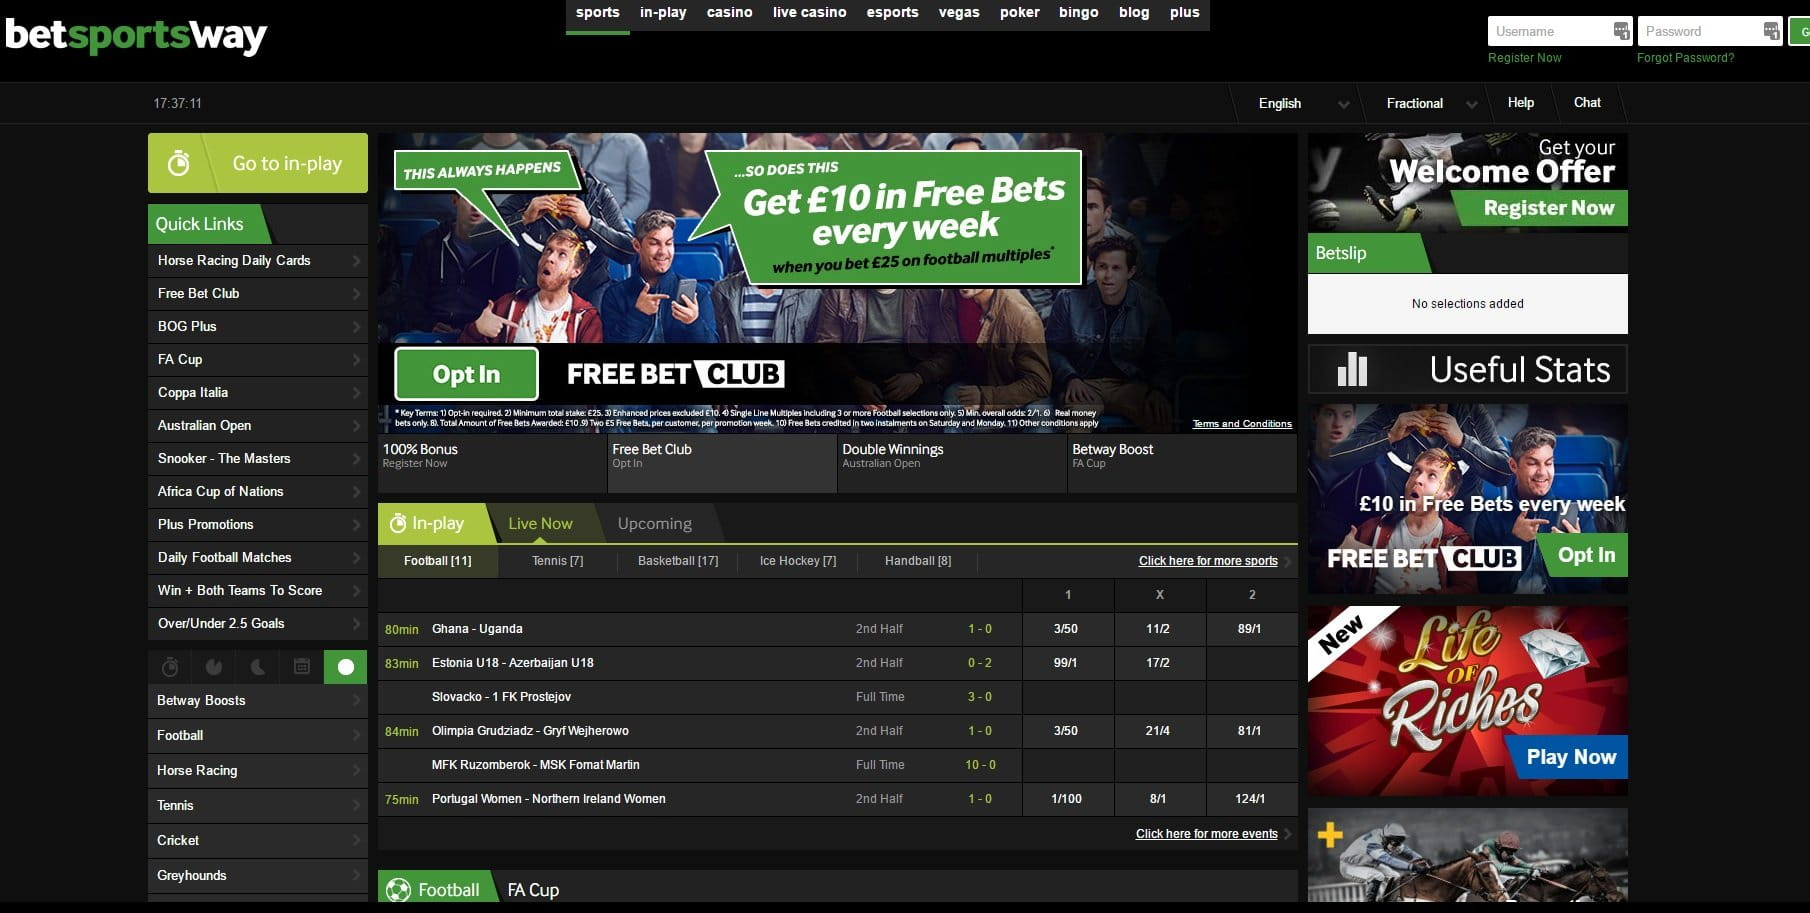 Betway Sports Lobby